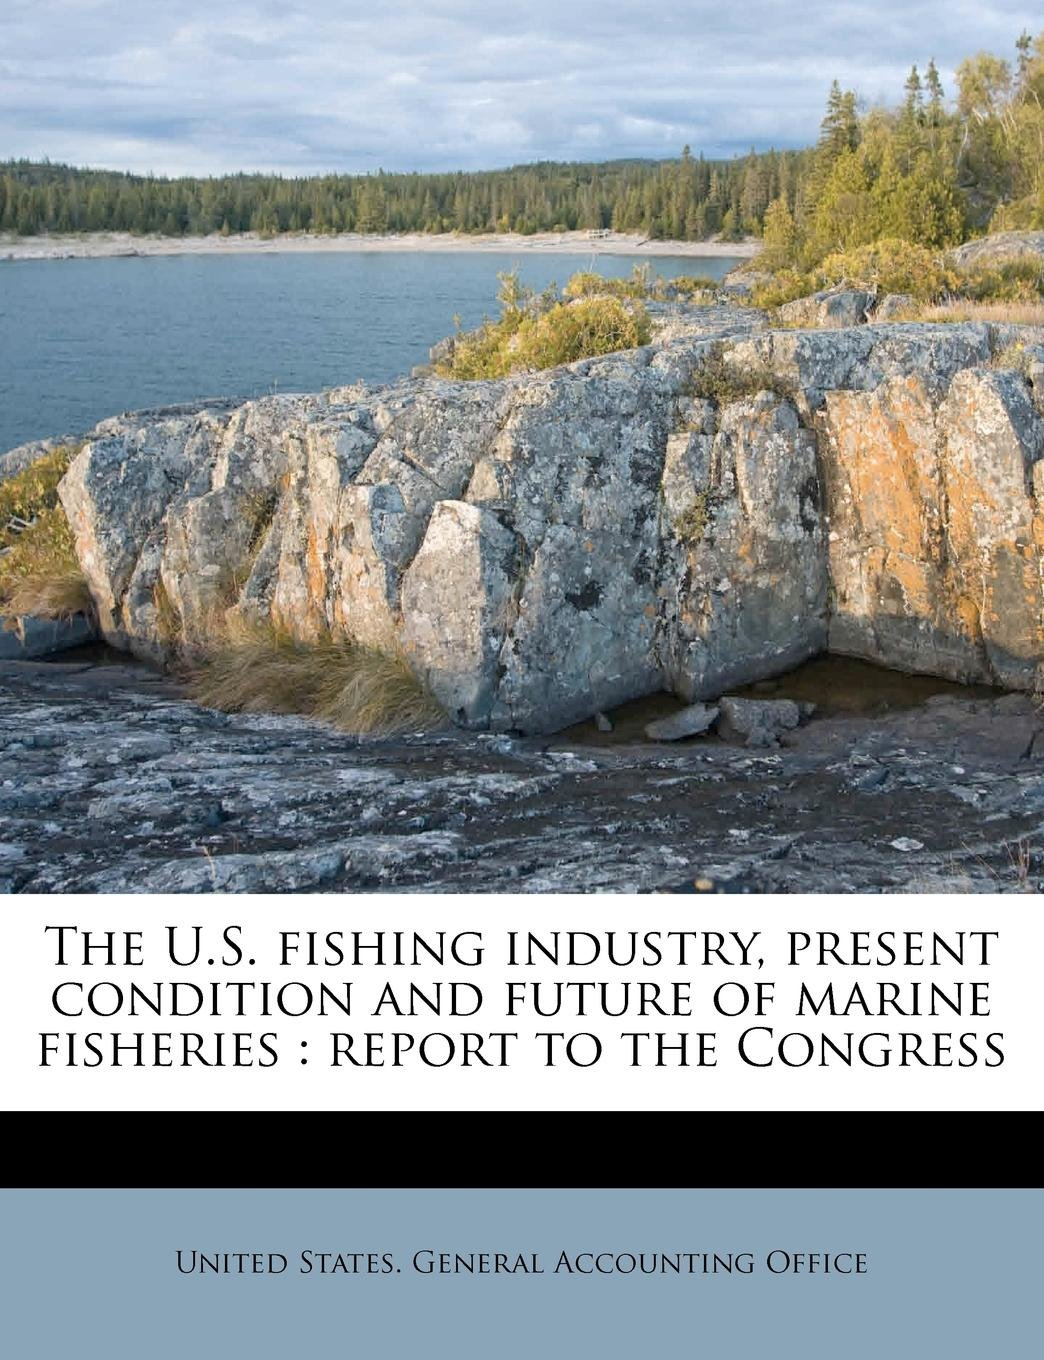 The U.S. fishing industry, present condition and future of marine fisheries: report to the Congress pdf